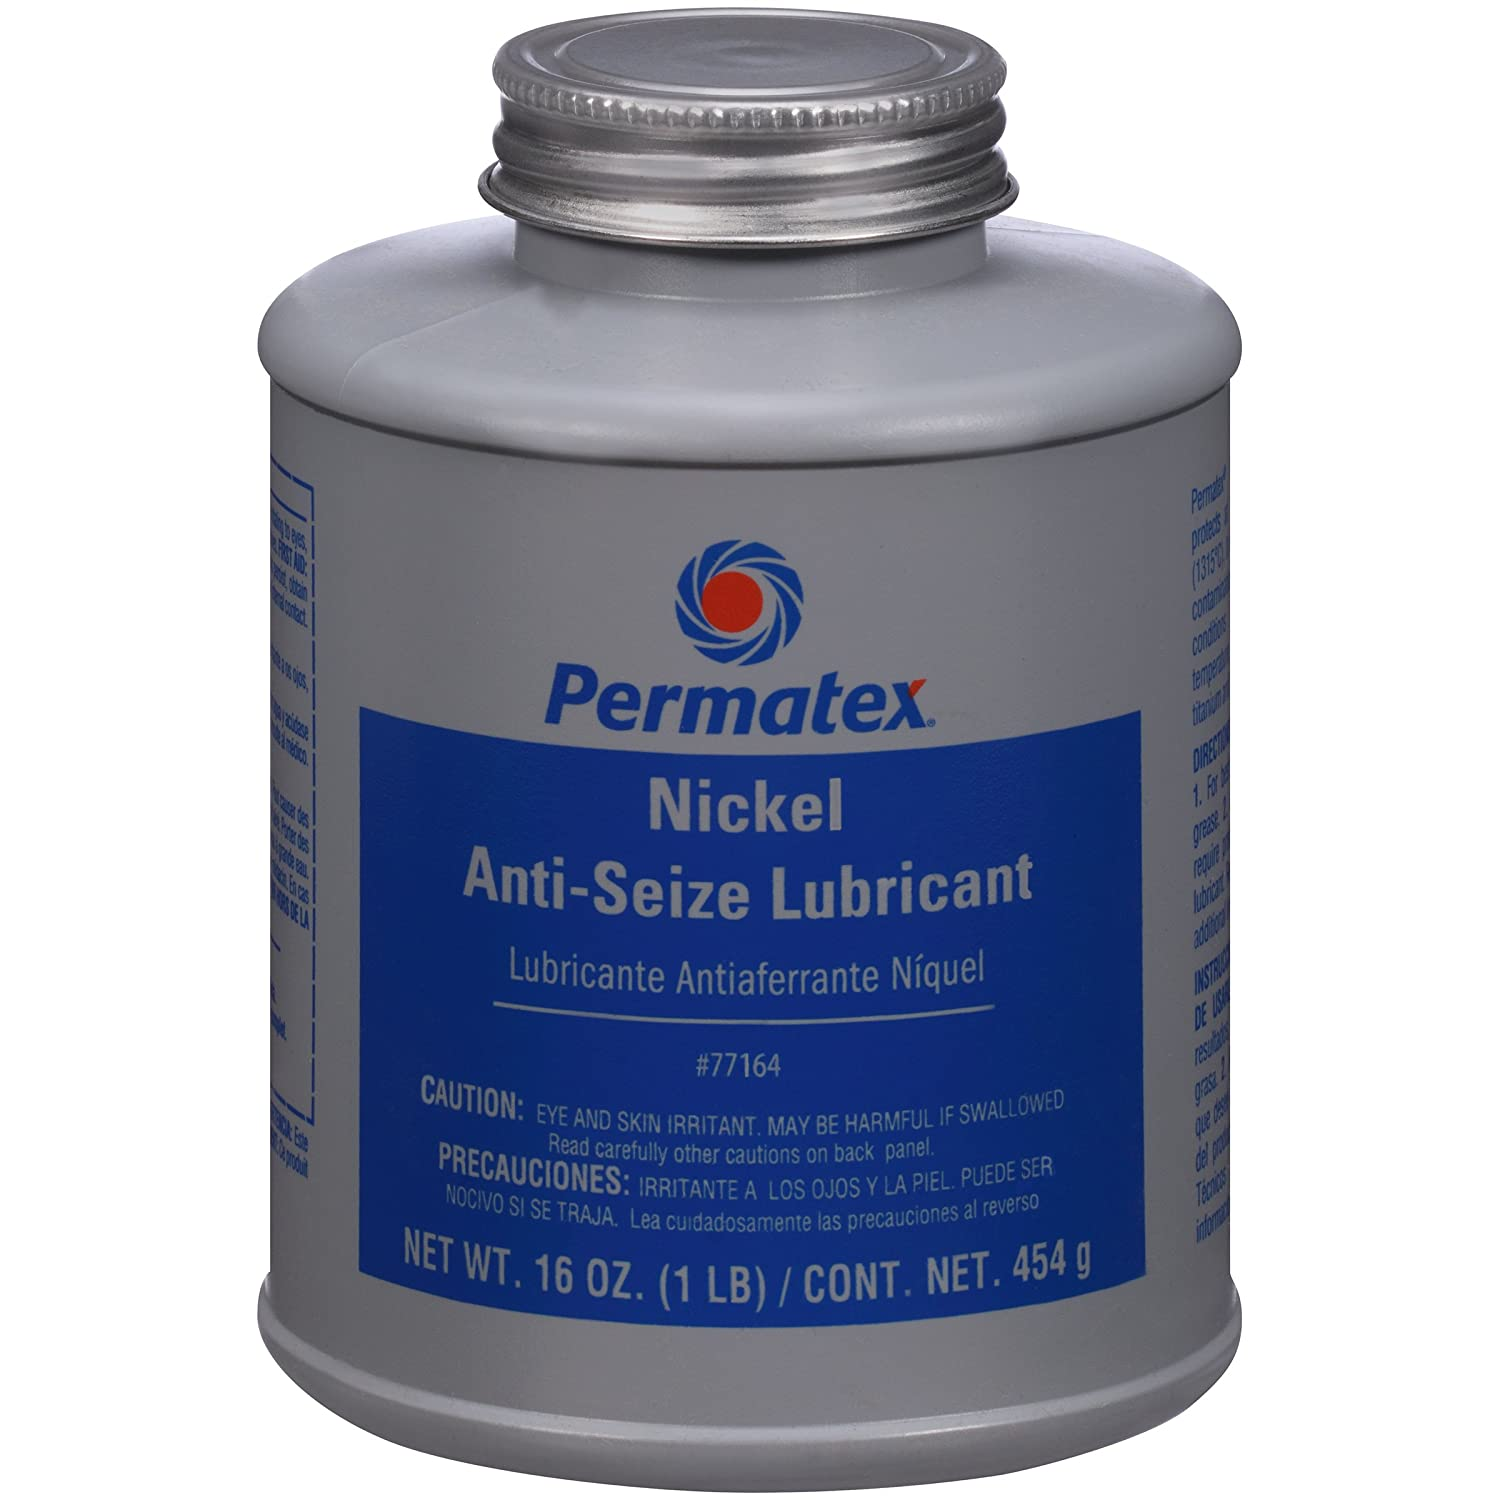 Amazon.com: Permatex 77134 Nickel Anti-Seize Lubricant, 0.5 oz Tube (Pack of 6): Automotive